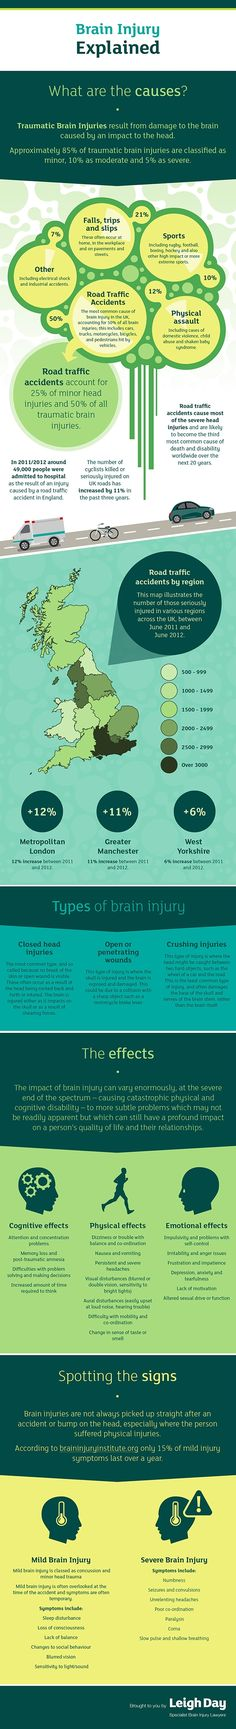 Brain Injury Explained #infographic This makes a lot of sense. I know my attention span has been short since I hit the tree back in SQUIRREL!